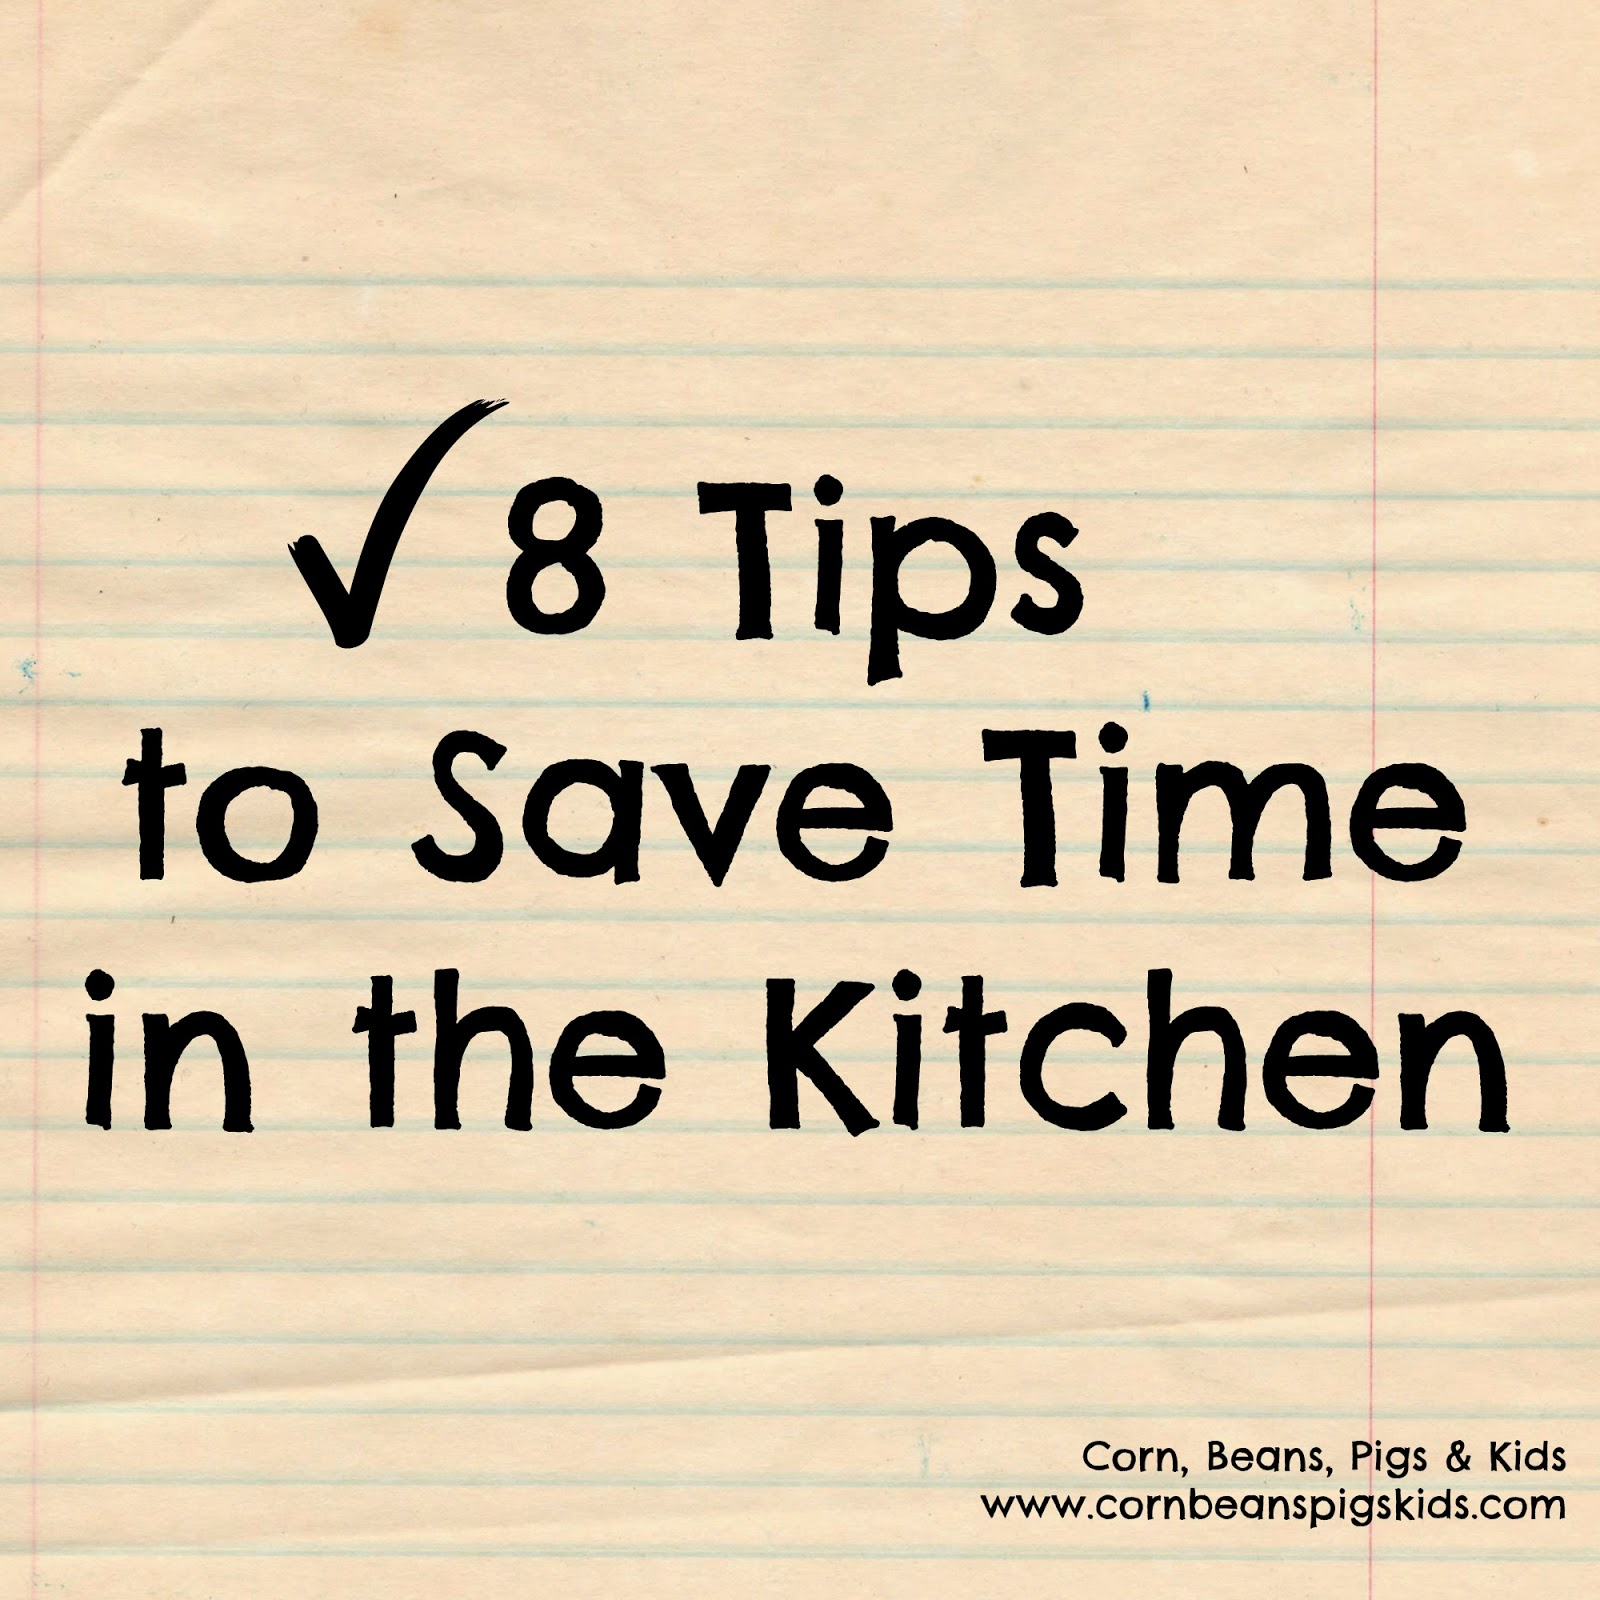 8 Tips to Save Time in the Kitchen